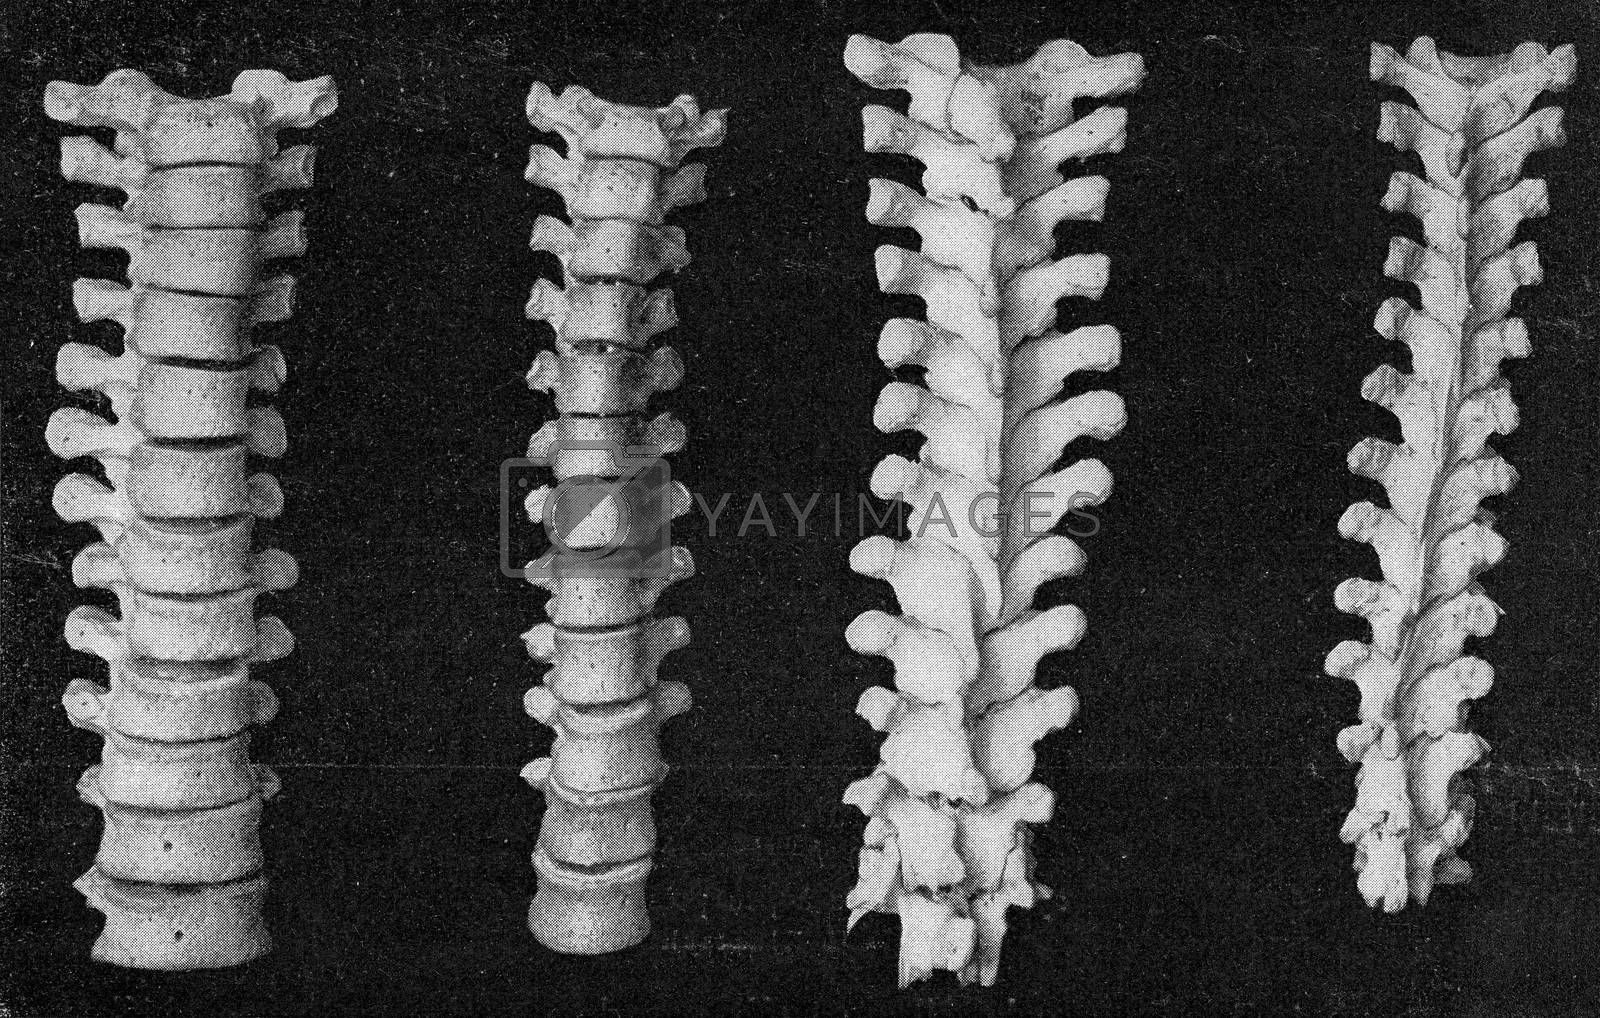 Comparative table of the vertebral column of the breast and the femur of a European and an Australian, vintage engraved illustration. From the Universe and Humanity, 1910.